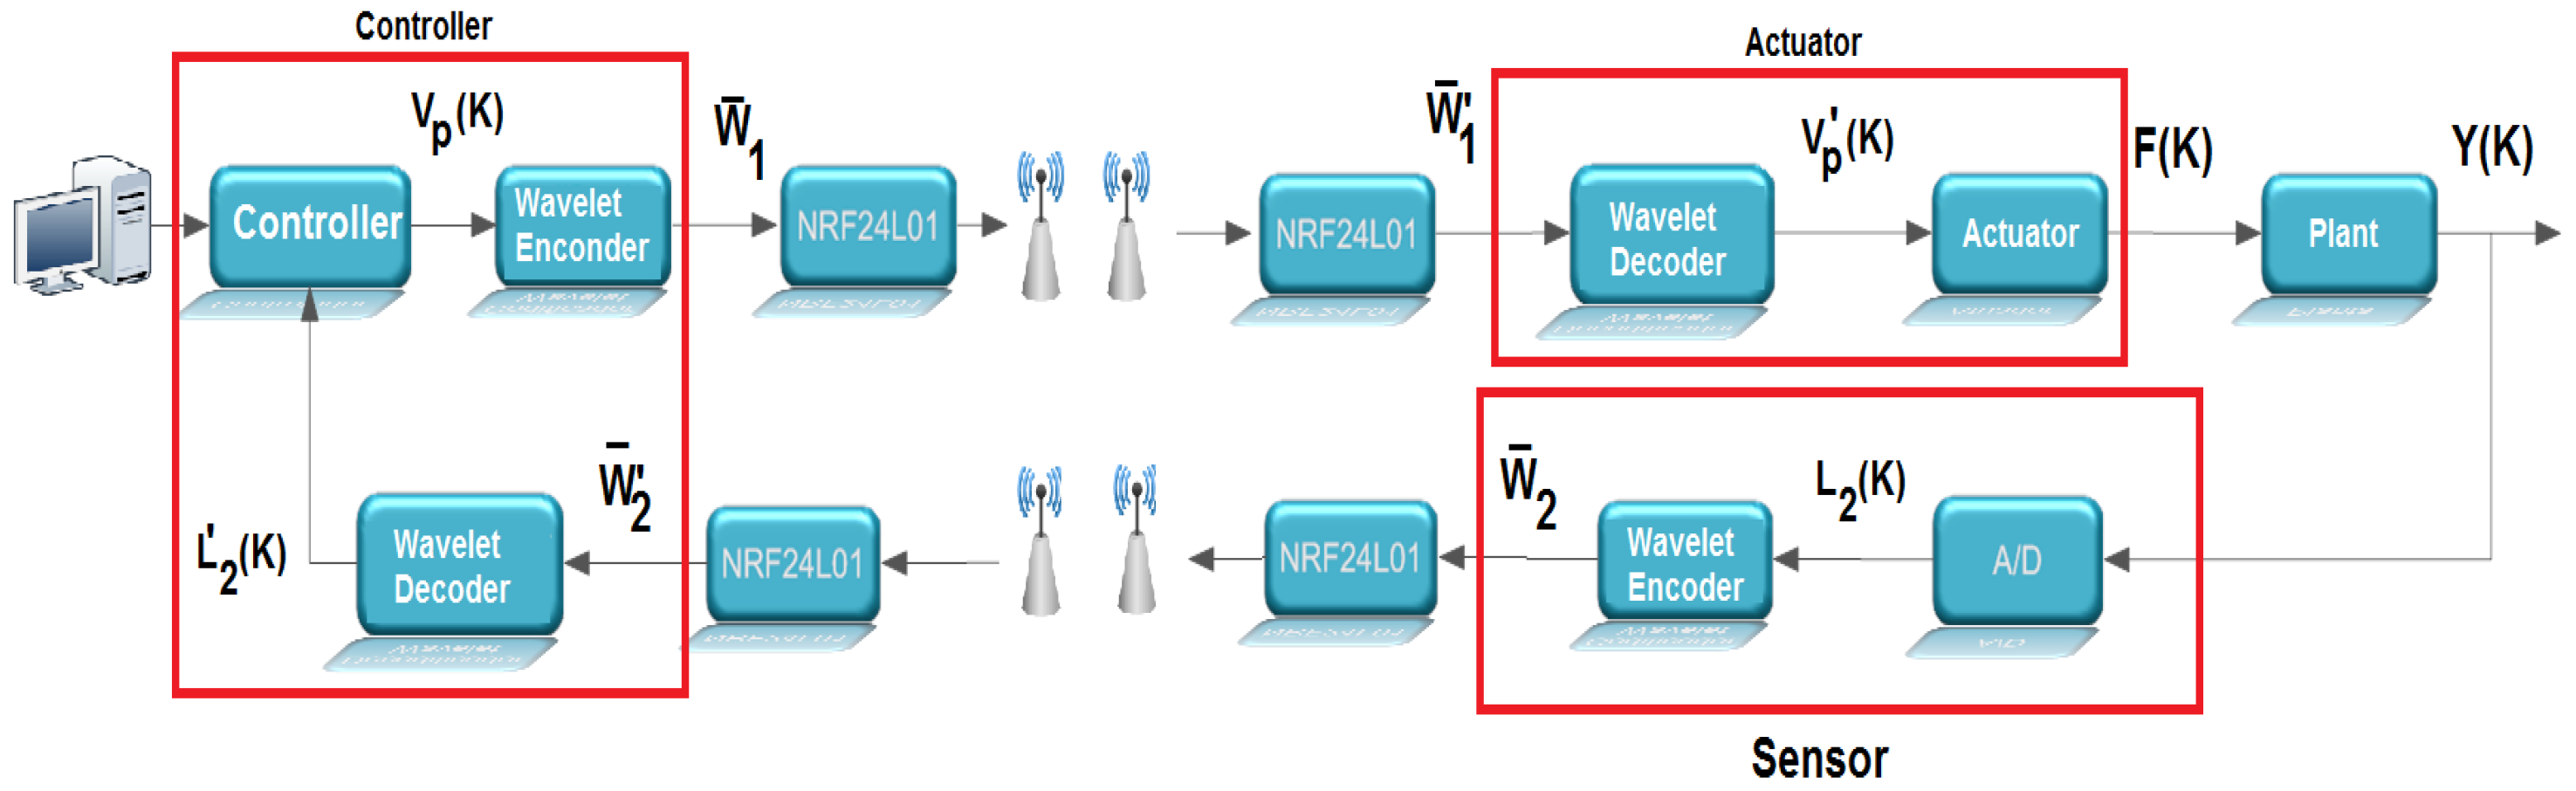 Sensors Free Full Text Adaptive Wavelet Coding Applied In A Wireless Controller Diagram No